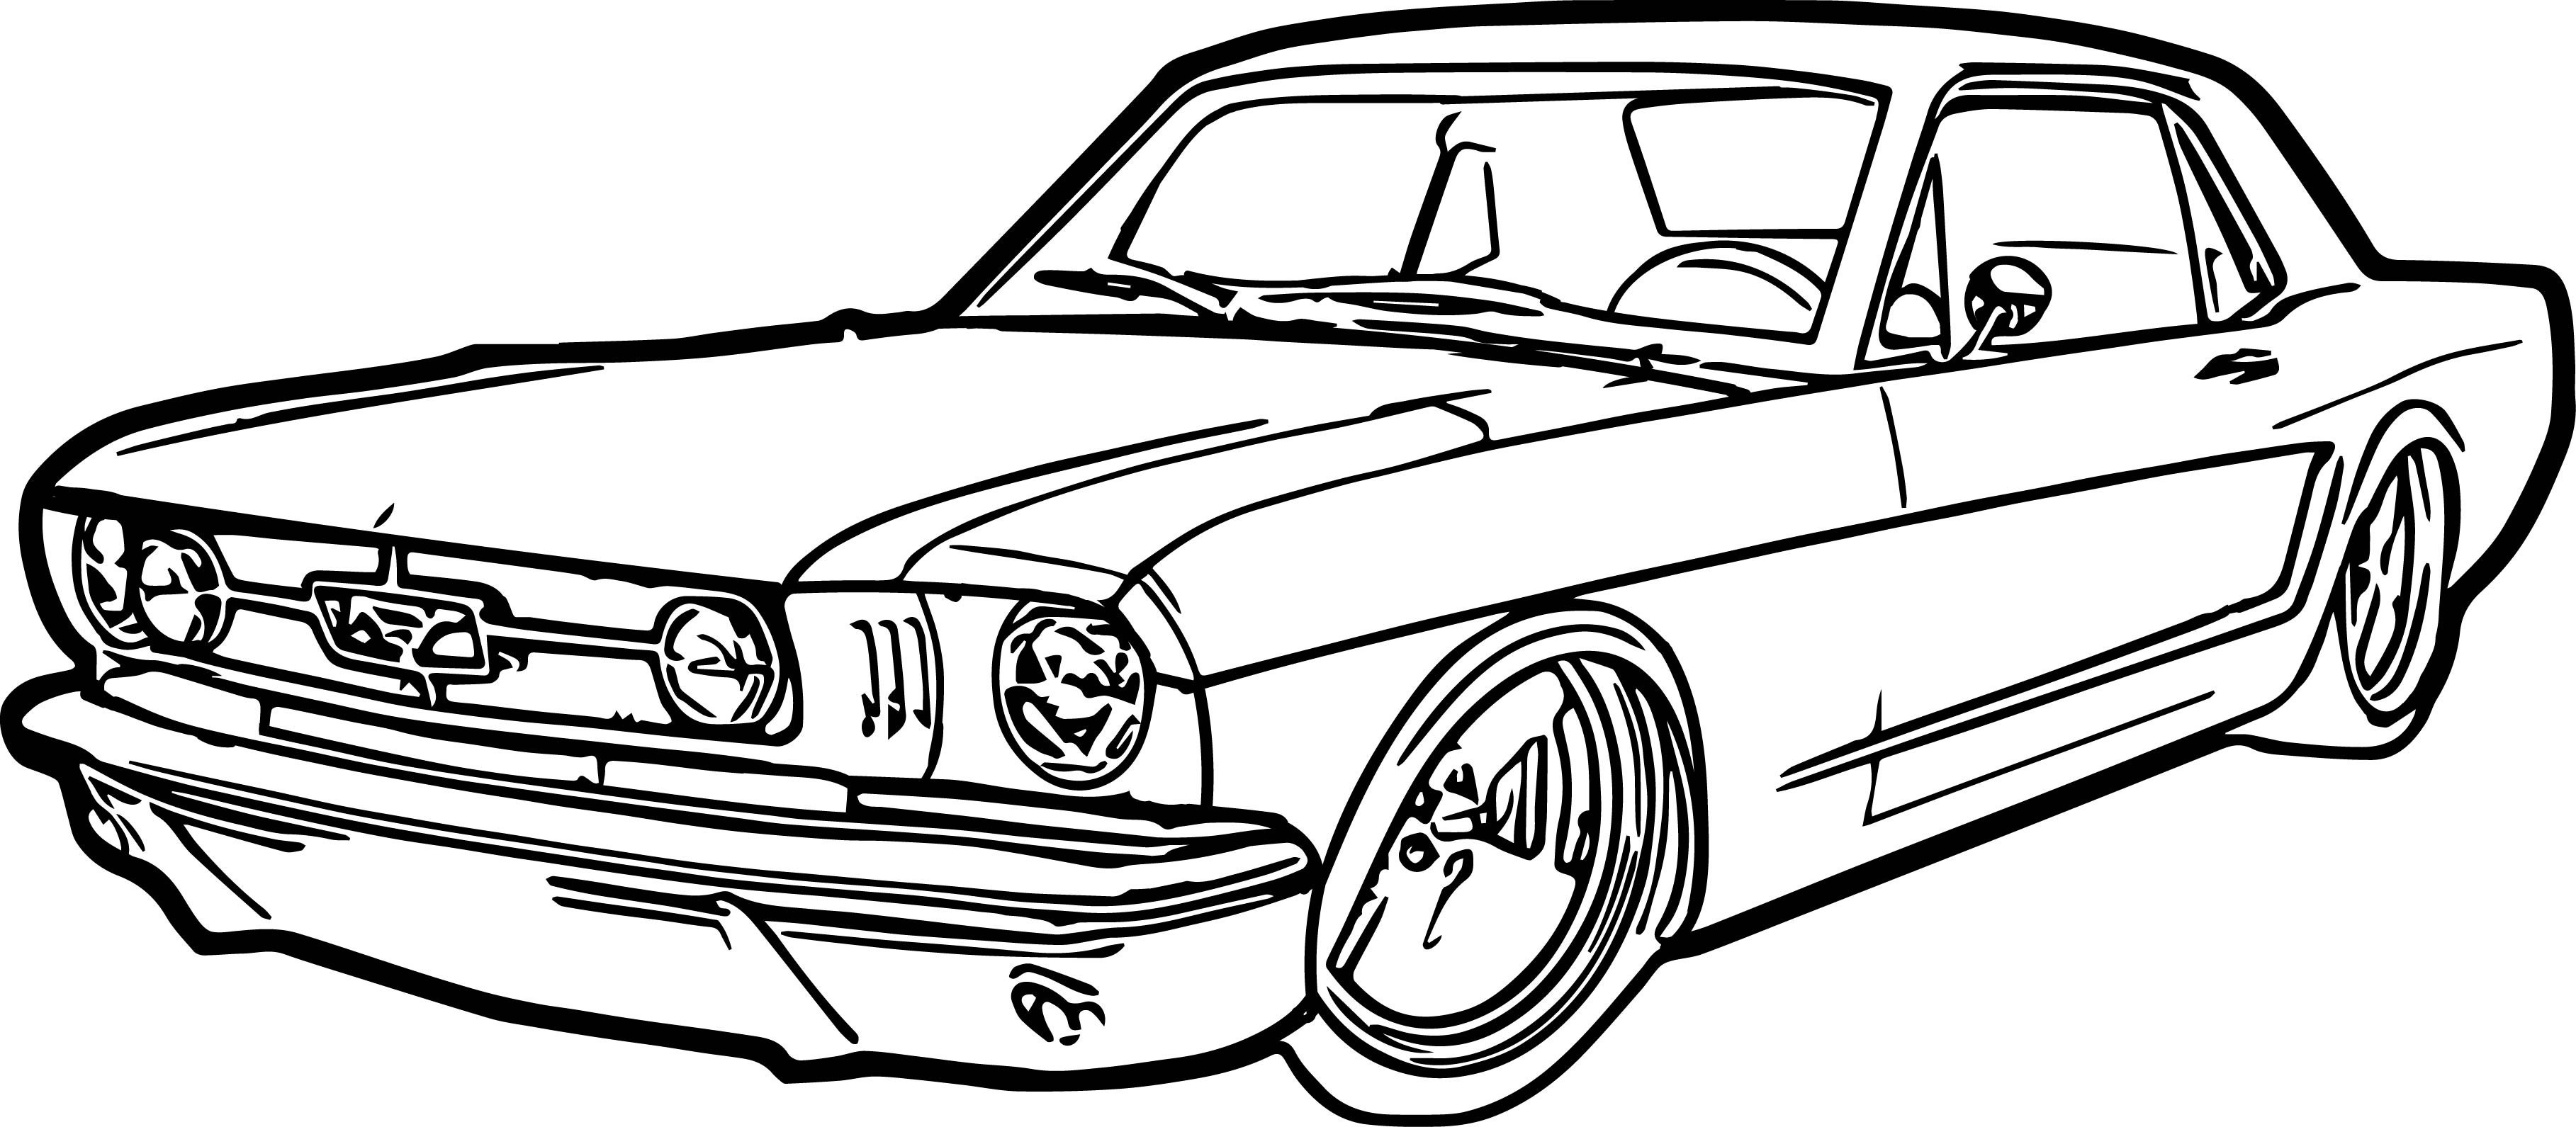 3635x1591 Classic Muscle Car Coloring Pages Unique Muscle Car Coloring Pages